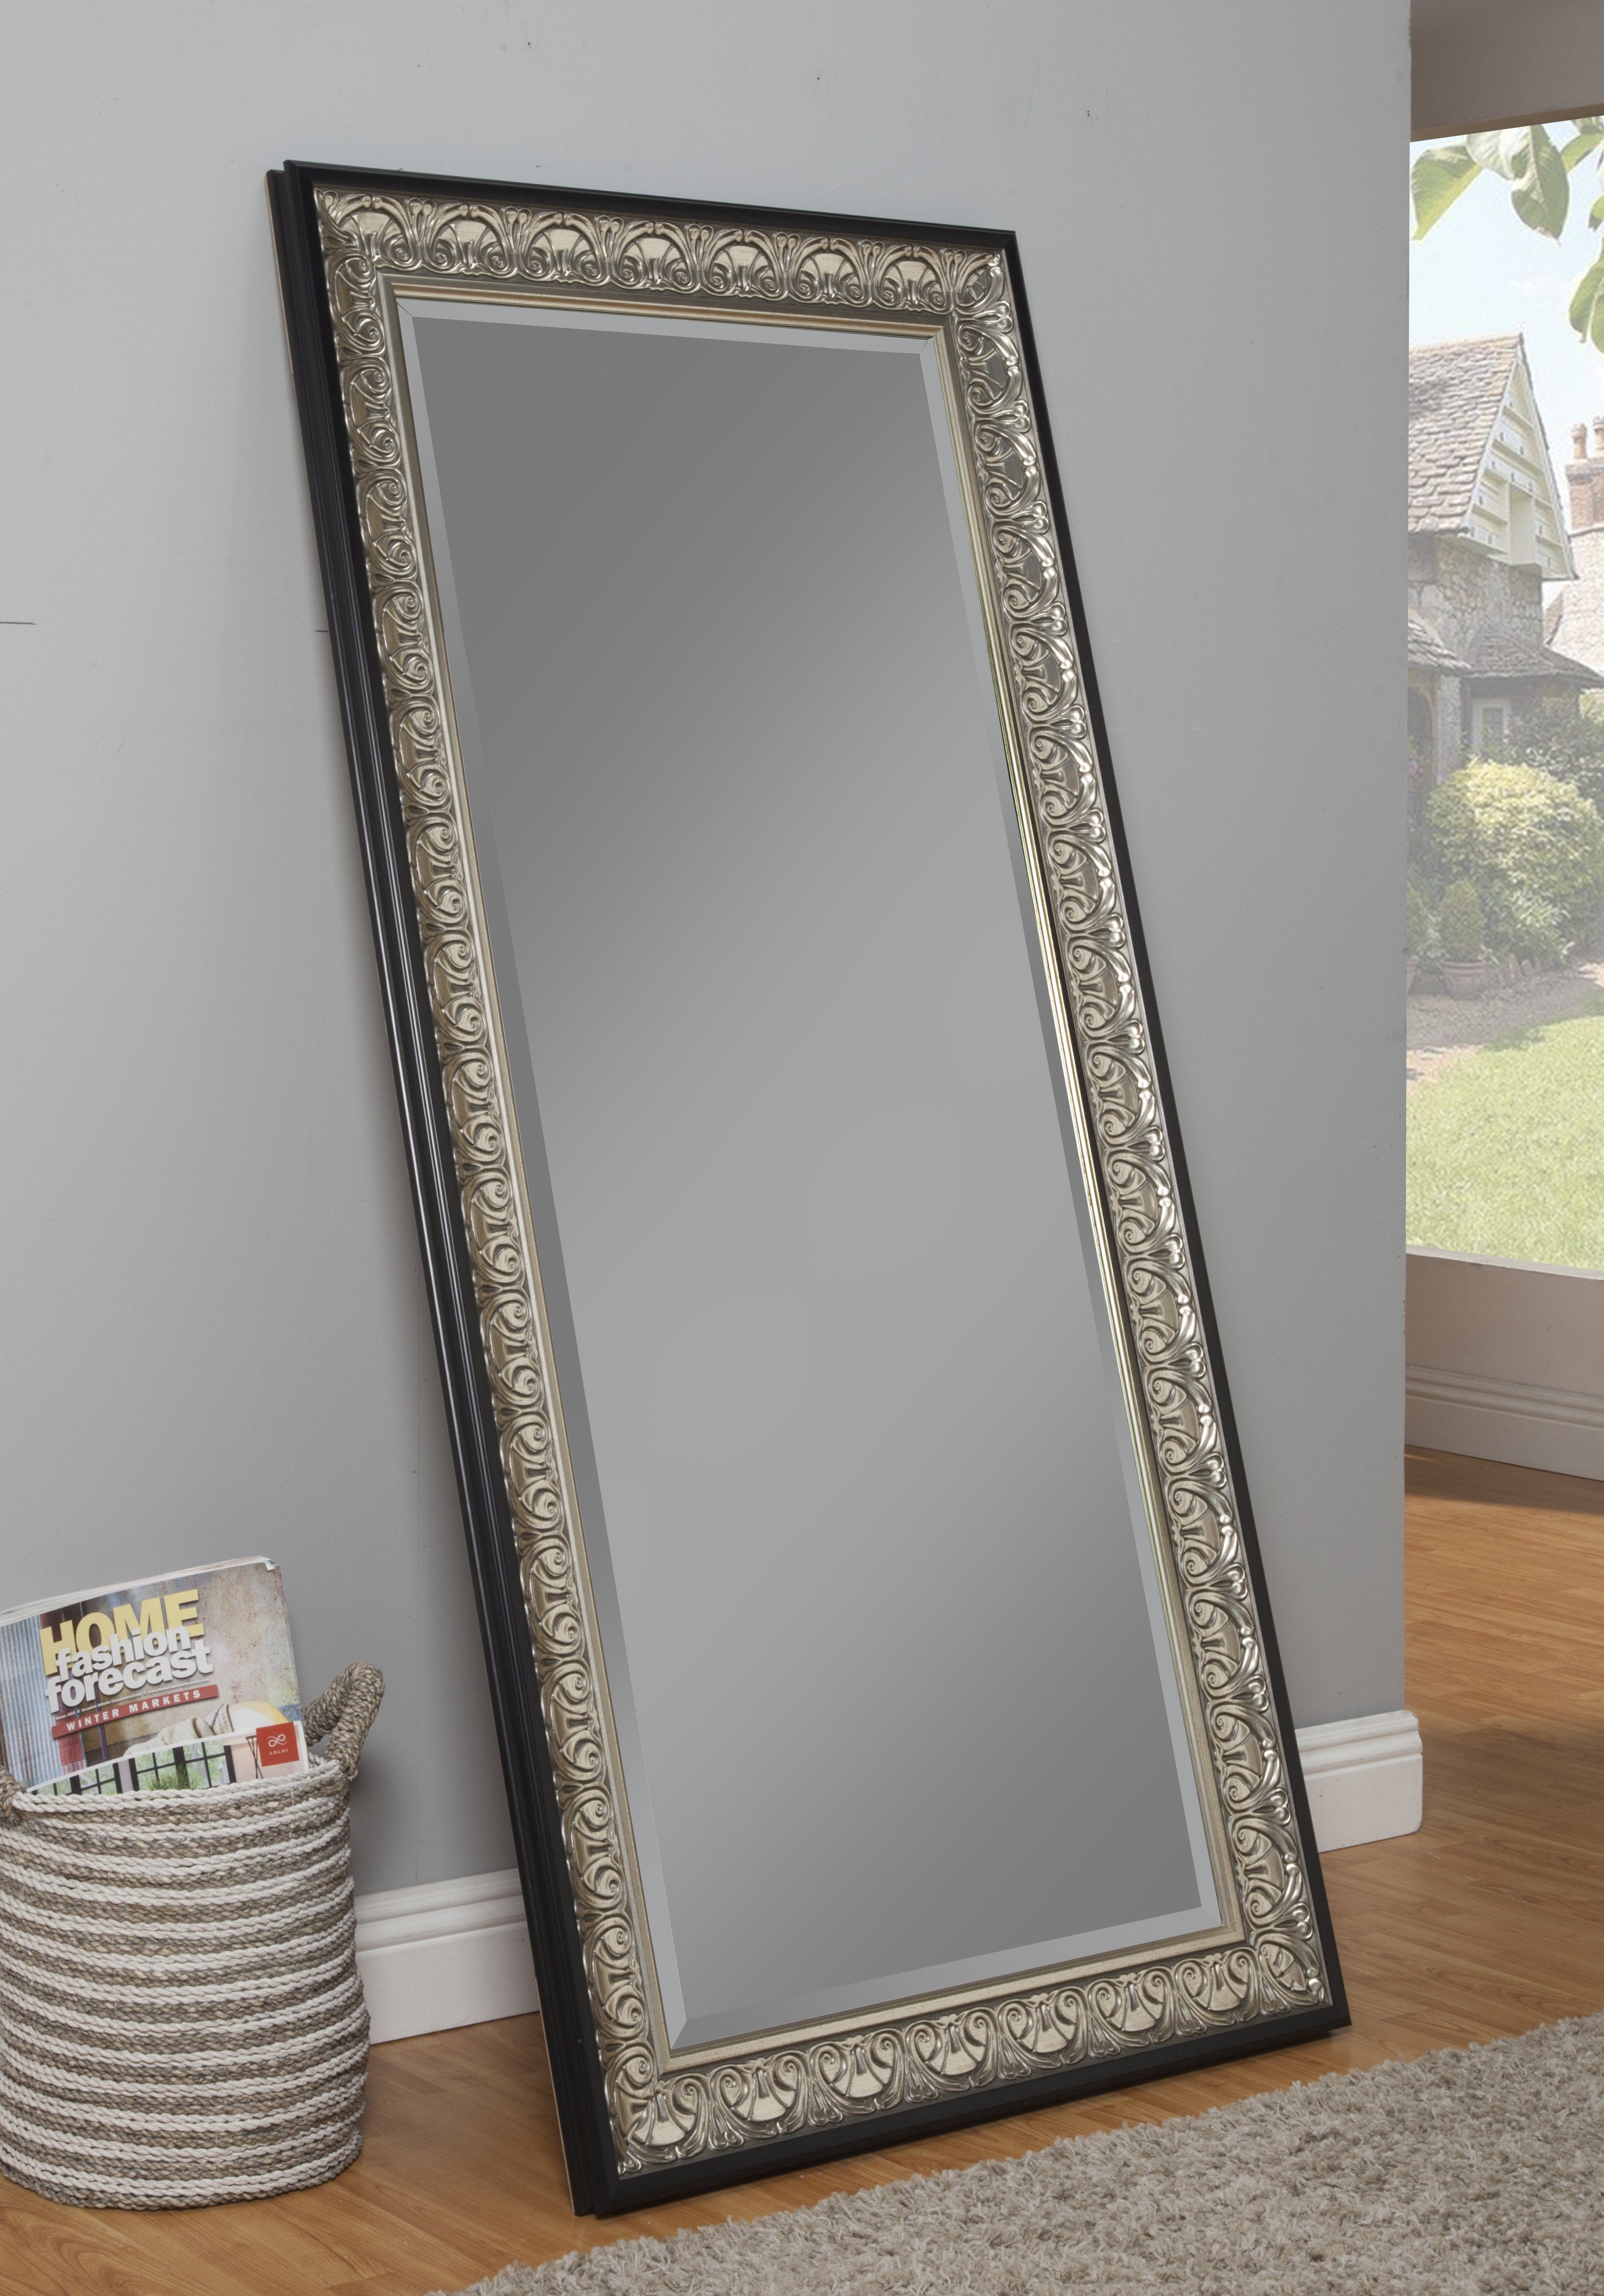 Boyers Wall Mirror for Boyers Wall Mirrors (Image 5 of 30)